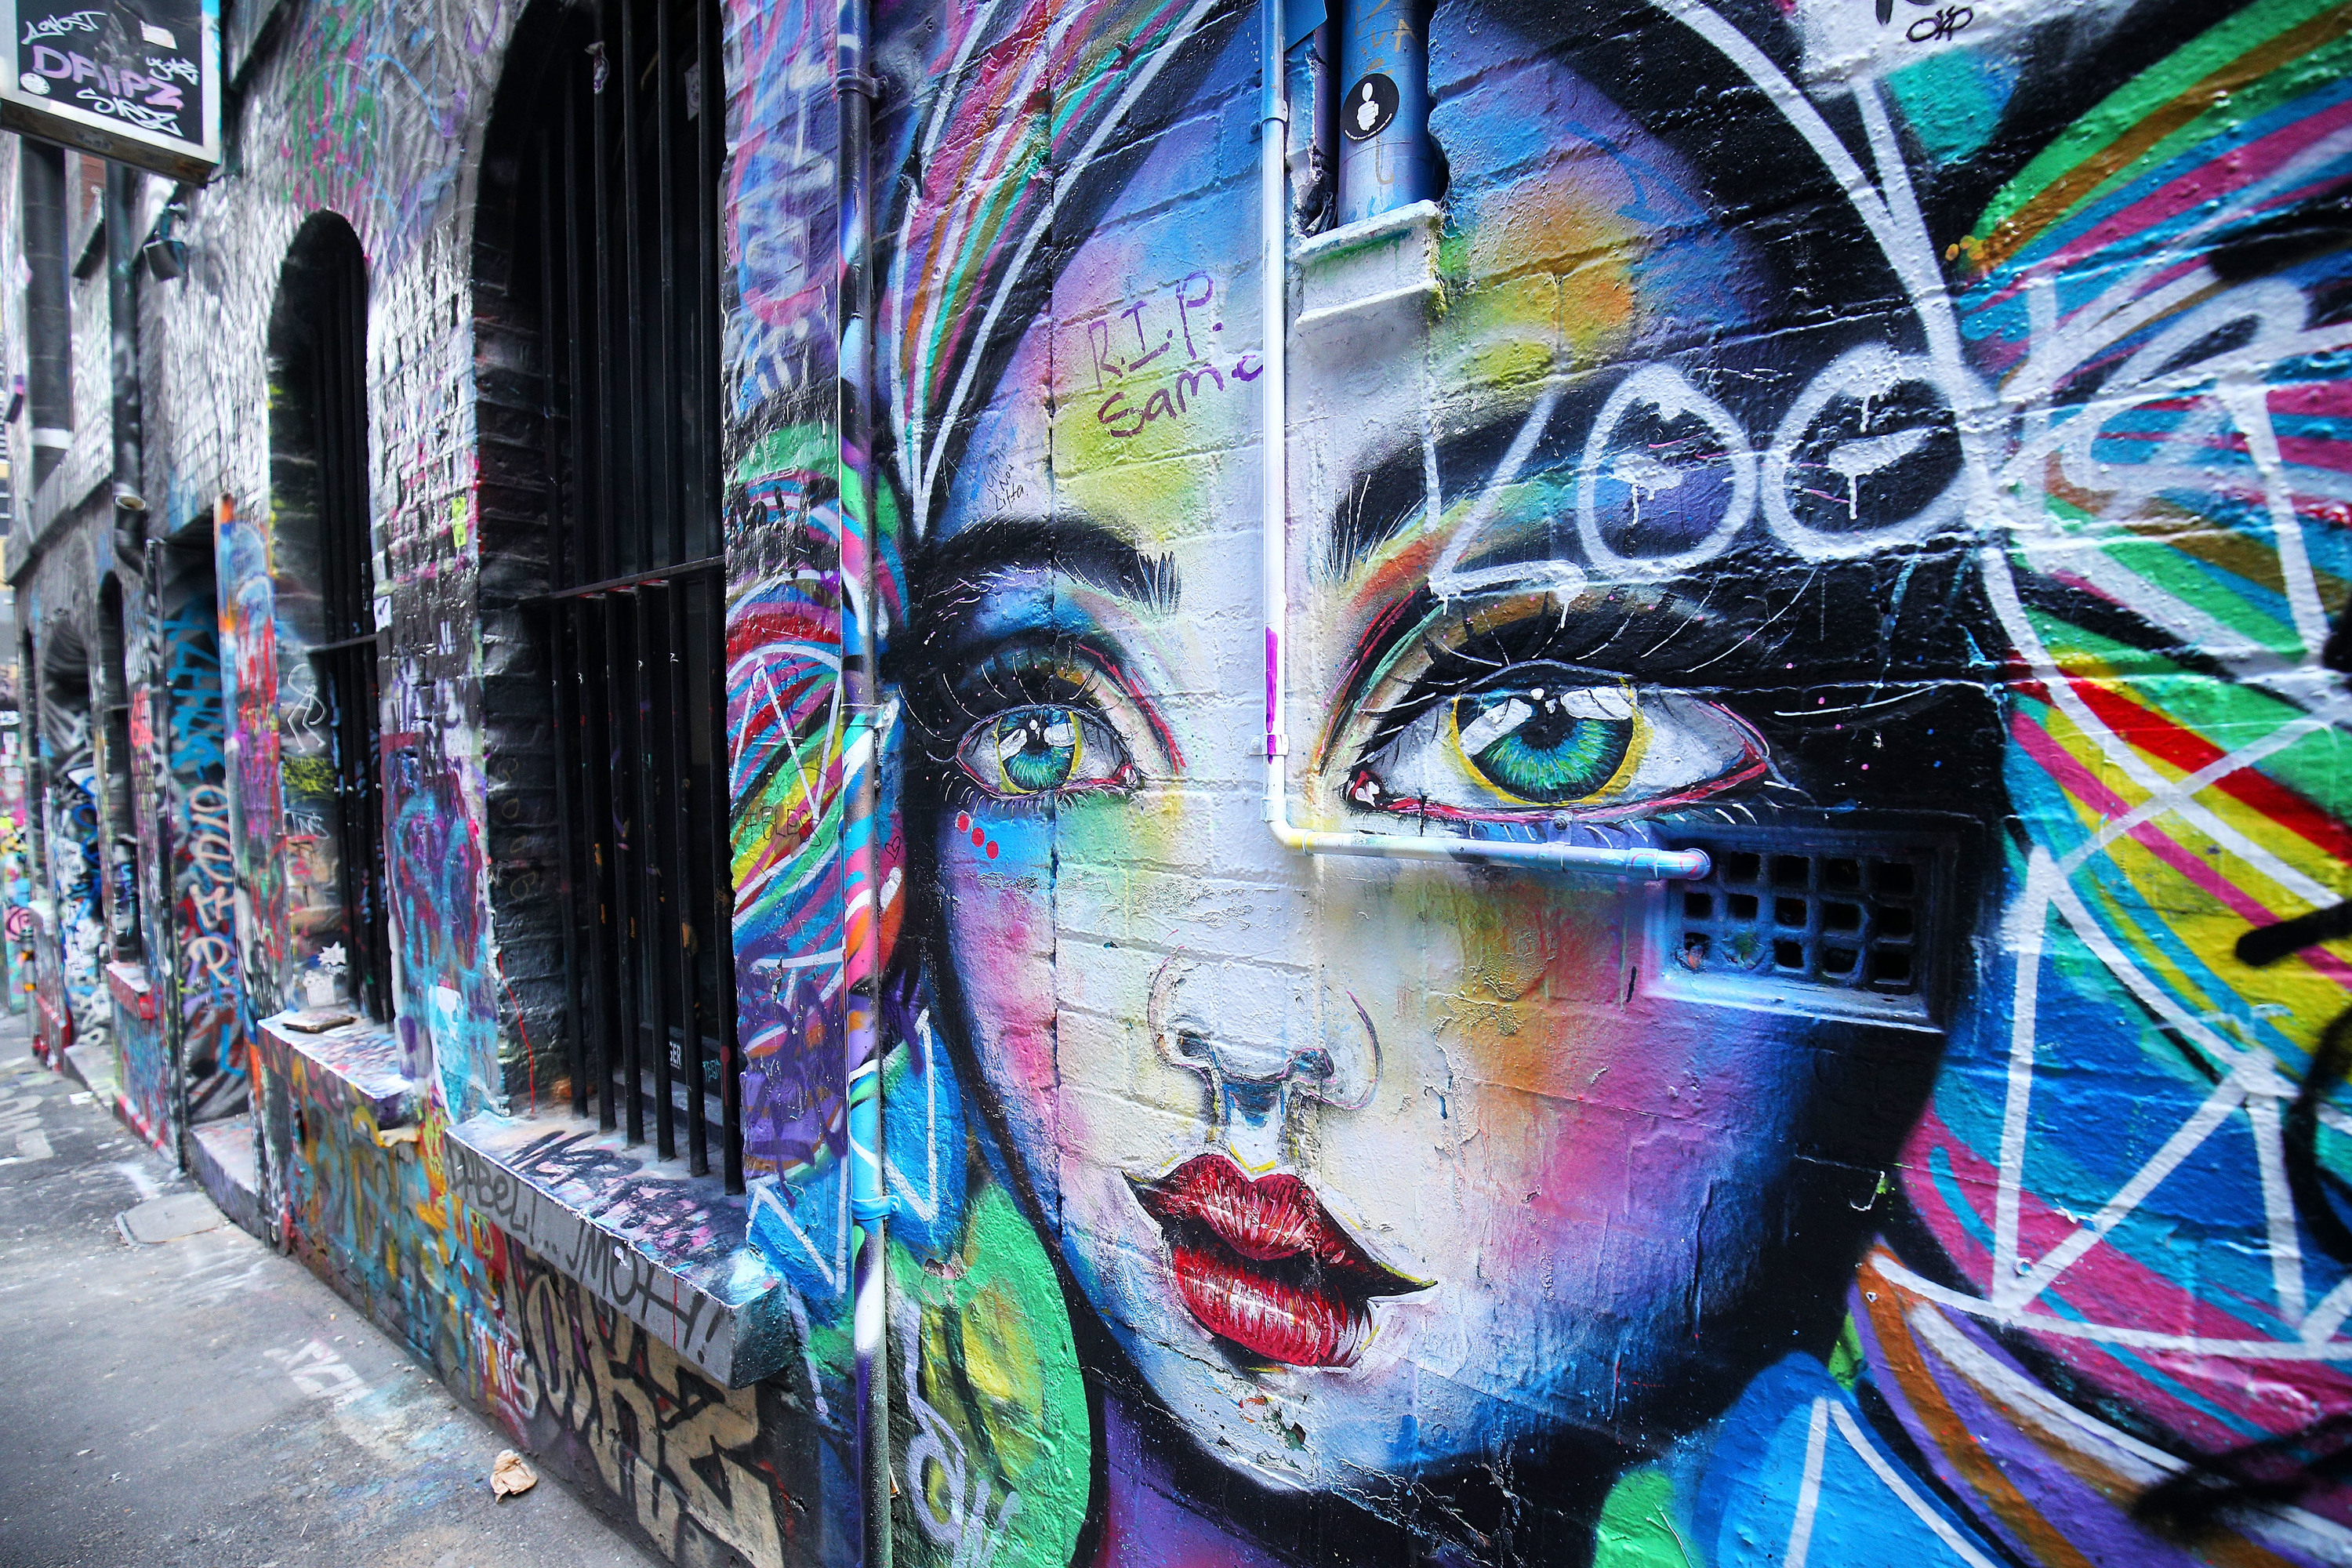 Background Hd Wallpaper Girl Where To Find The Best Street Art In Melbourne